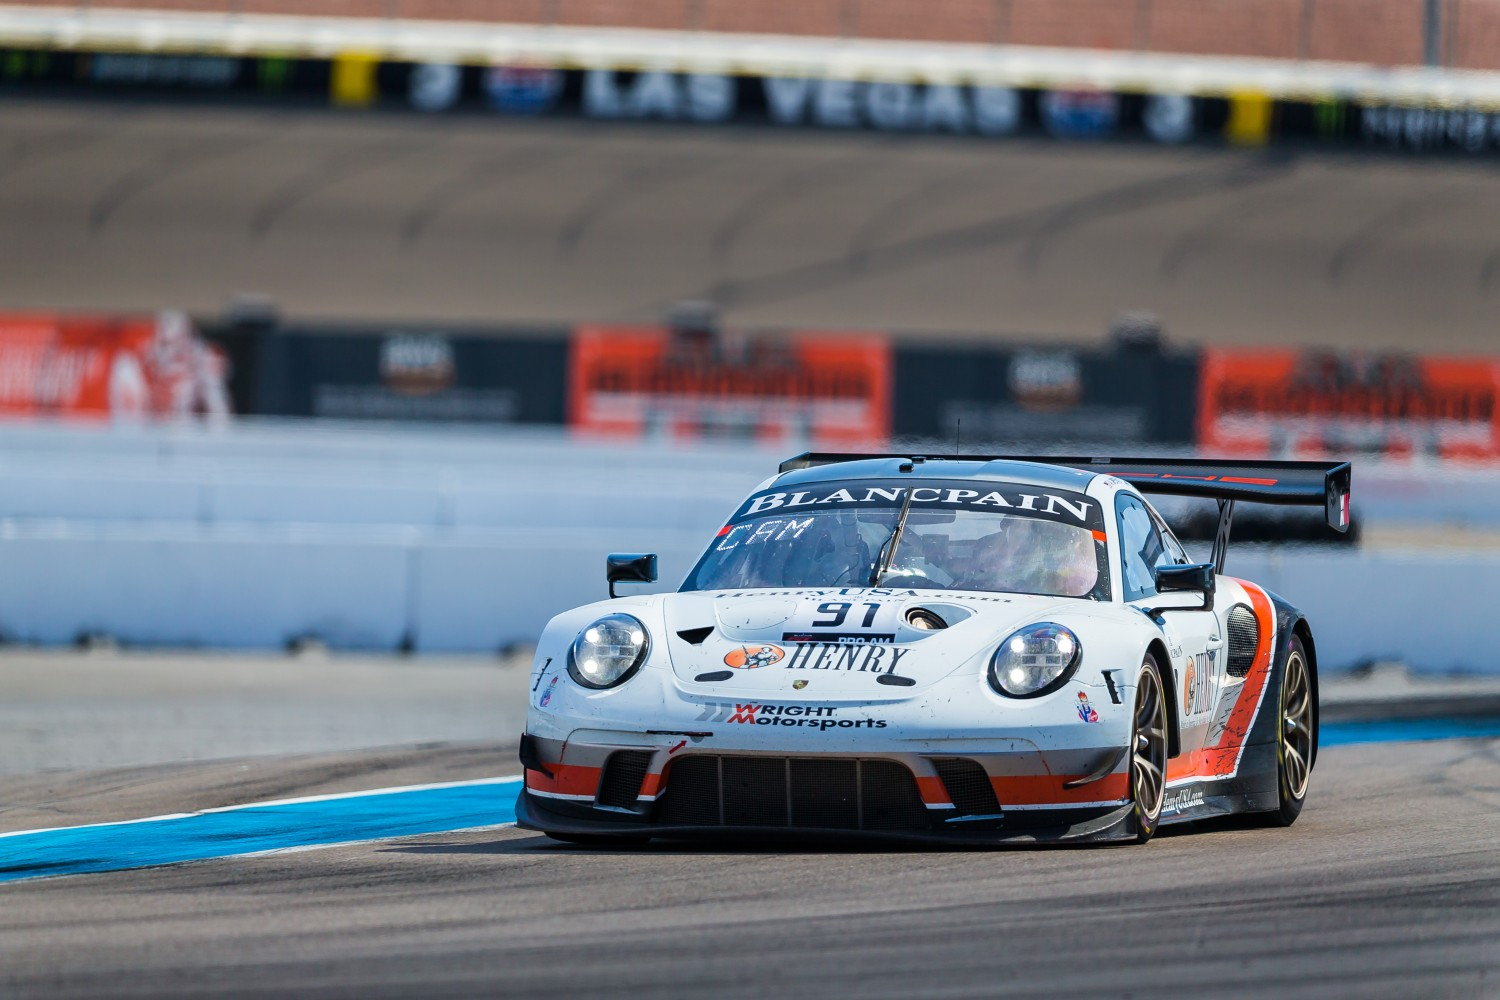 #91 Porsche 911 GT3 R (991) of Anthony Imperato and Matt Campbell with Wright Motorsports  2019 Blancpain GT World Challenge America - Las Vegas, Las Vegas NV | Fabian Lagunas/SRO